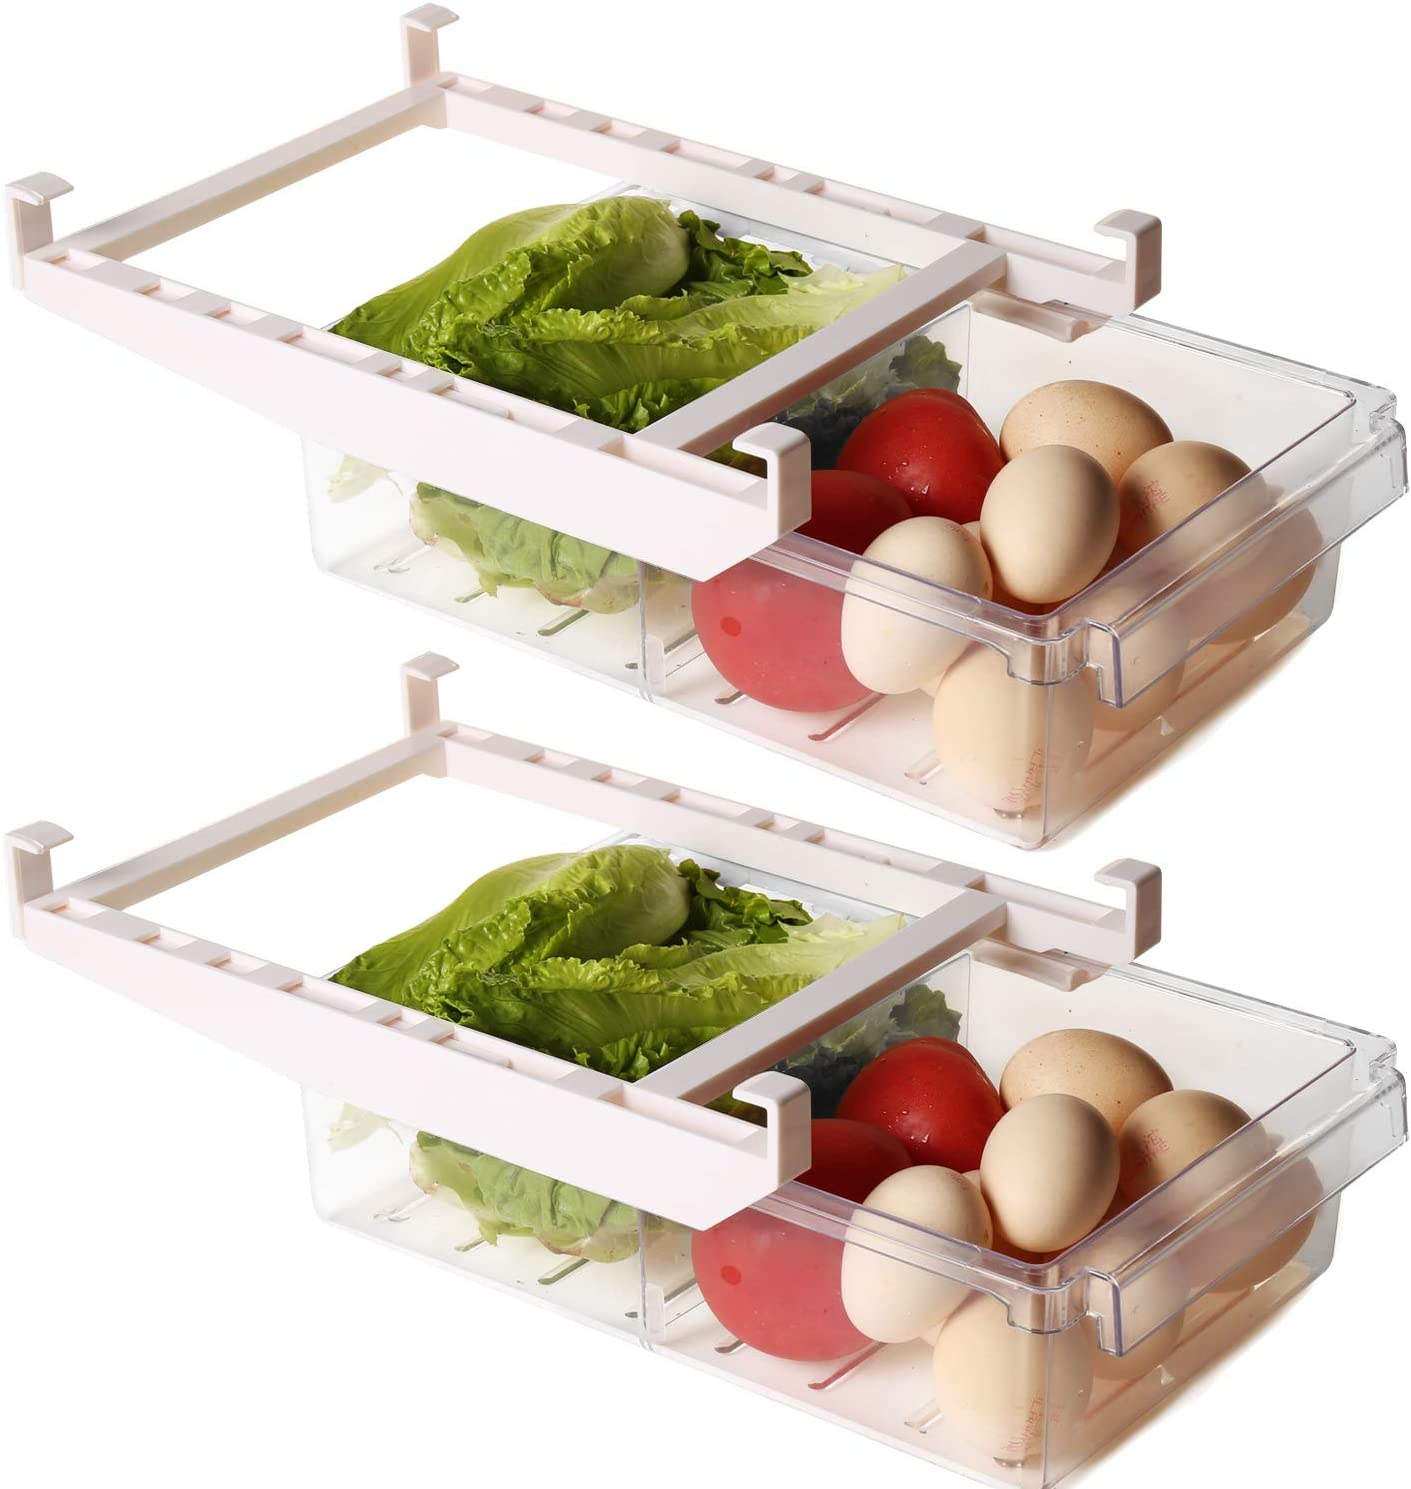 Shopwithgreen 2 Pack Refrigerator Organizer Bins with Handle, Pull-out Fridge Drawer Organizer, Freely Pullable Refrigerator Storage Box with 2 Divided Sections, Fit for 0.78'' Fridge Shelf